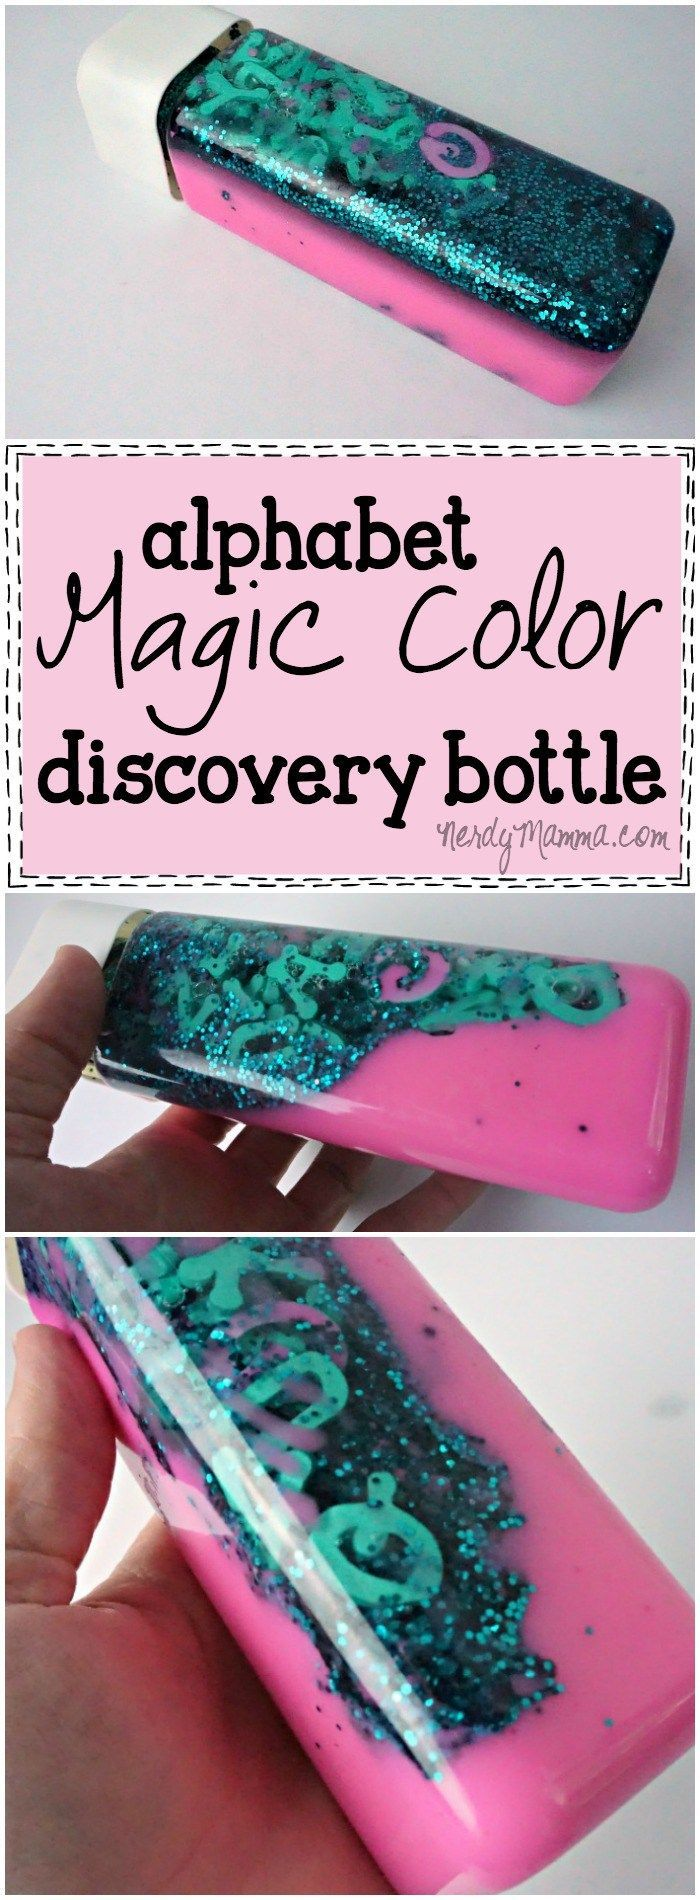 This alphabet magic color discovery bottle is so cool! The colors...just so neat! I can't wait to make one for my kids!